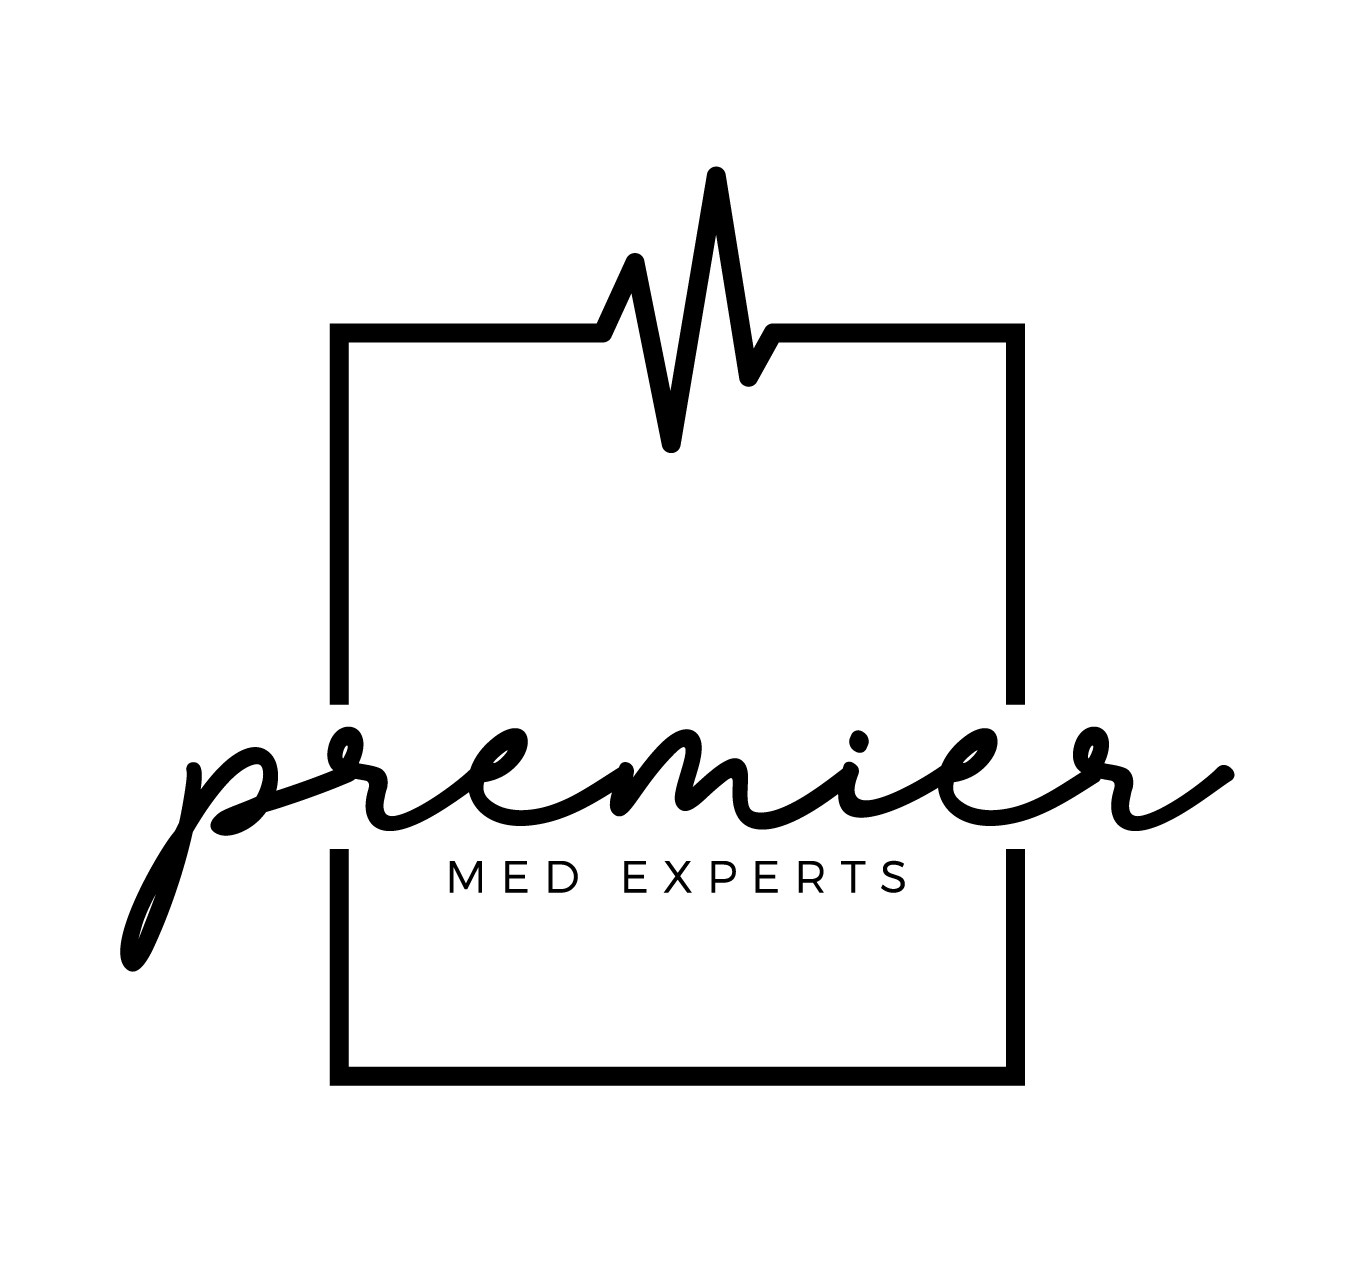 Premier Med Experts, LLC